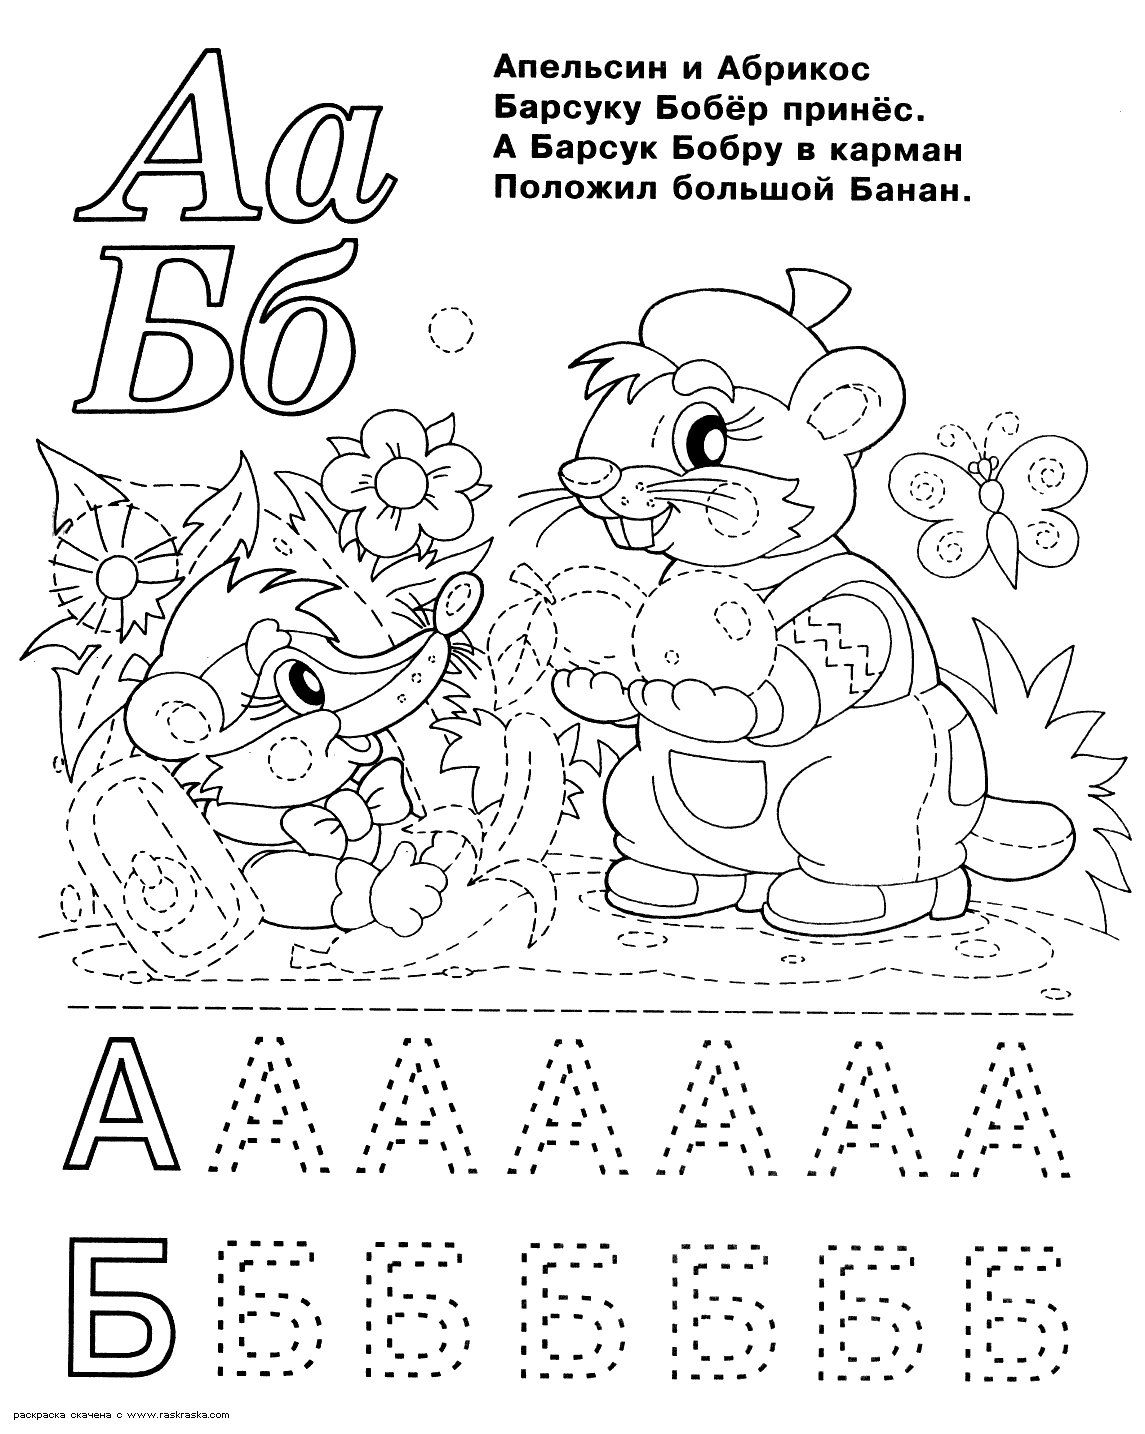 Al alphabet colouring worksheets for kindergarten - Cyrillic Alphabet Coloring For Children I M Not Finding All Of The Letters